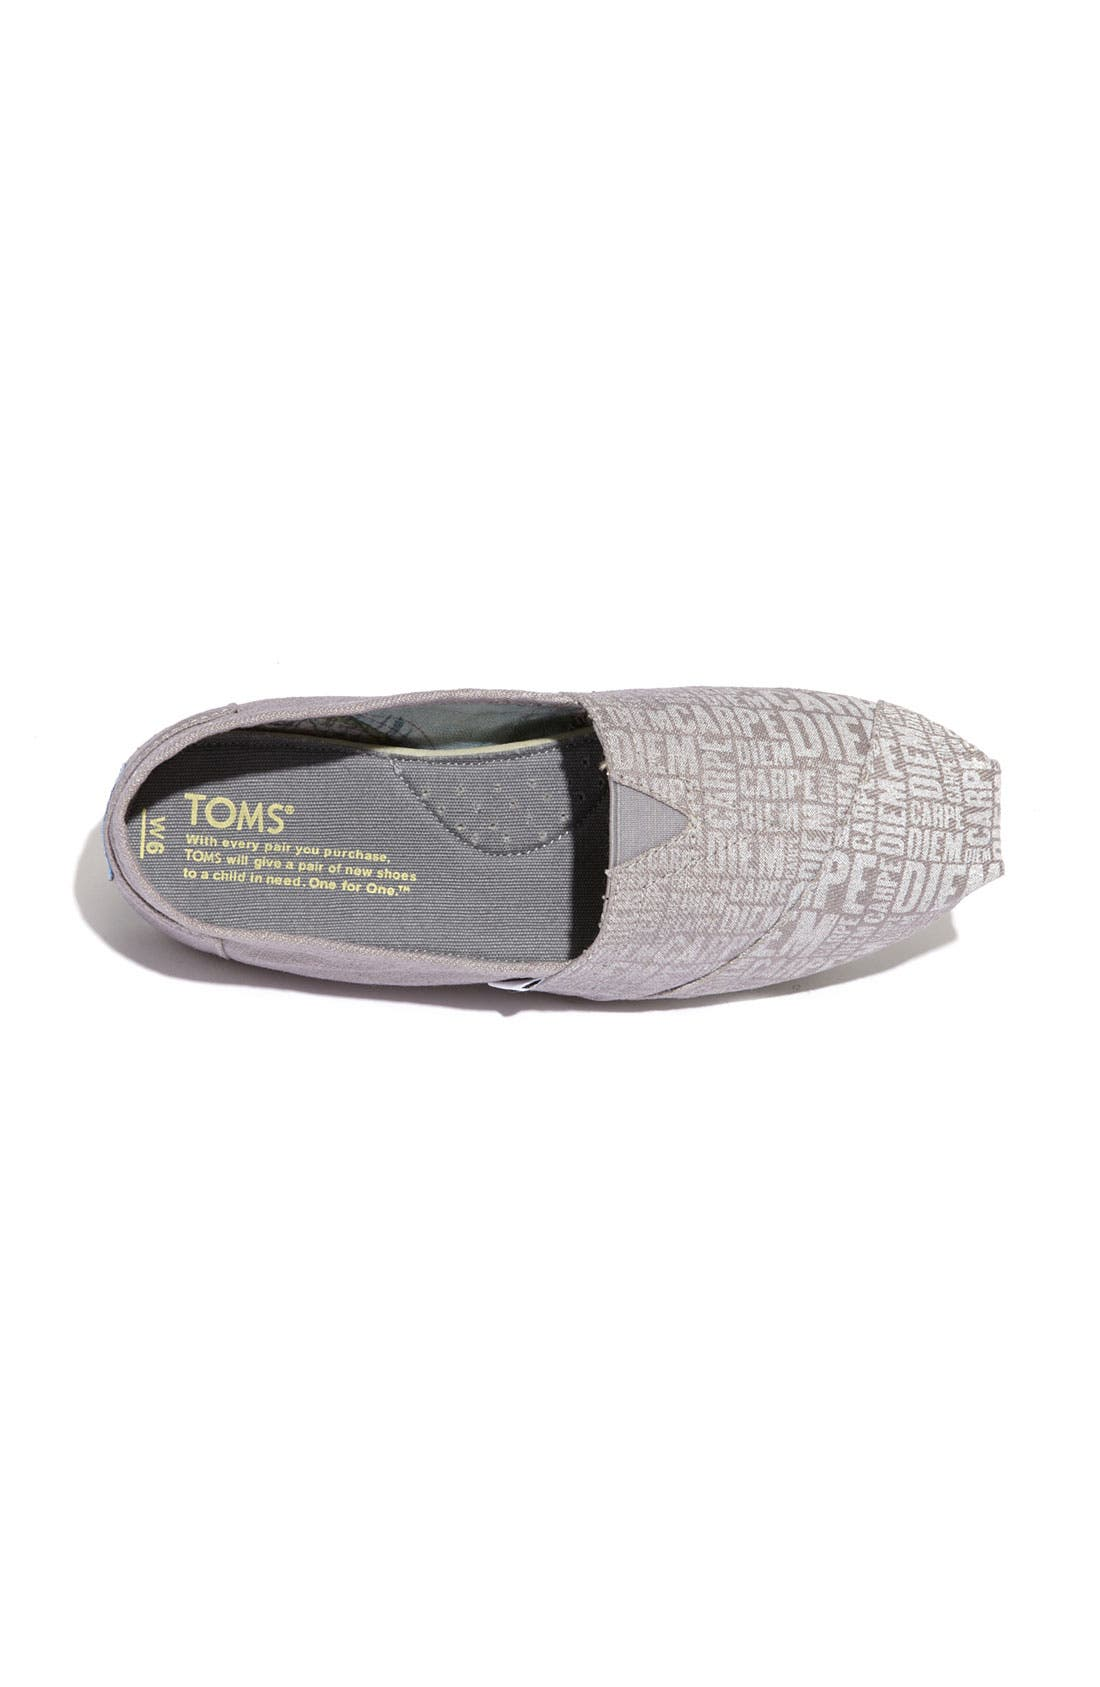 Alternate Image 3  - TOMS 'Classic - Carpe Diem' Canvas Slip-On (Women)